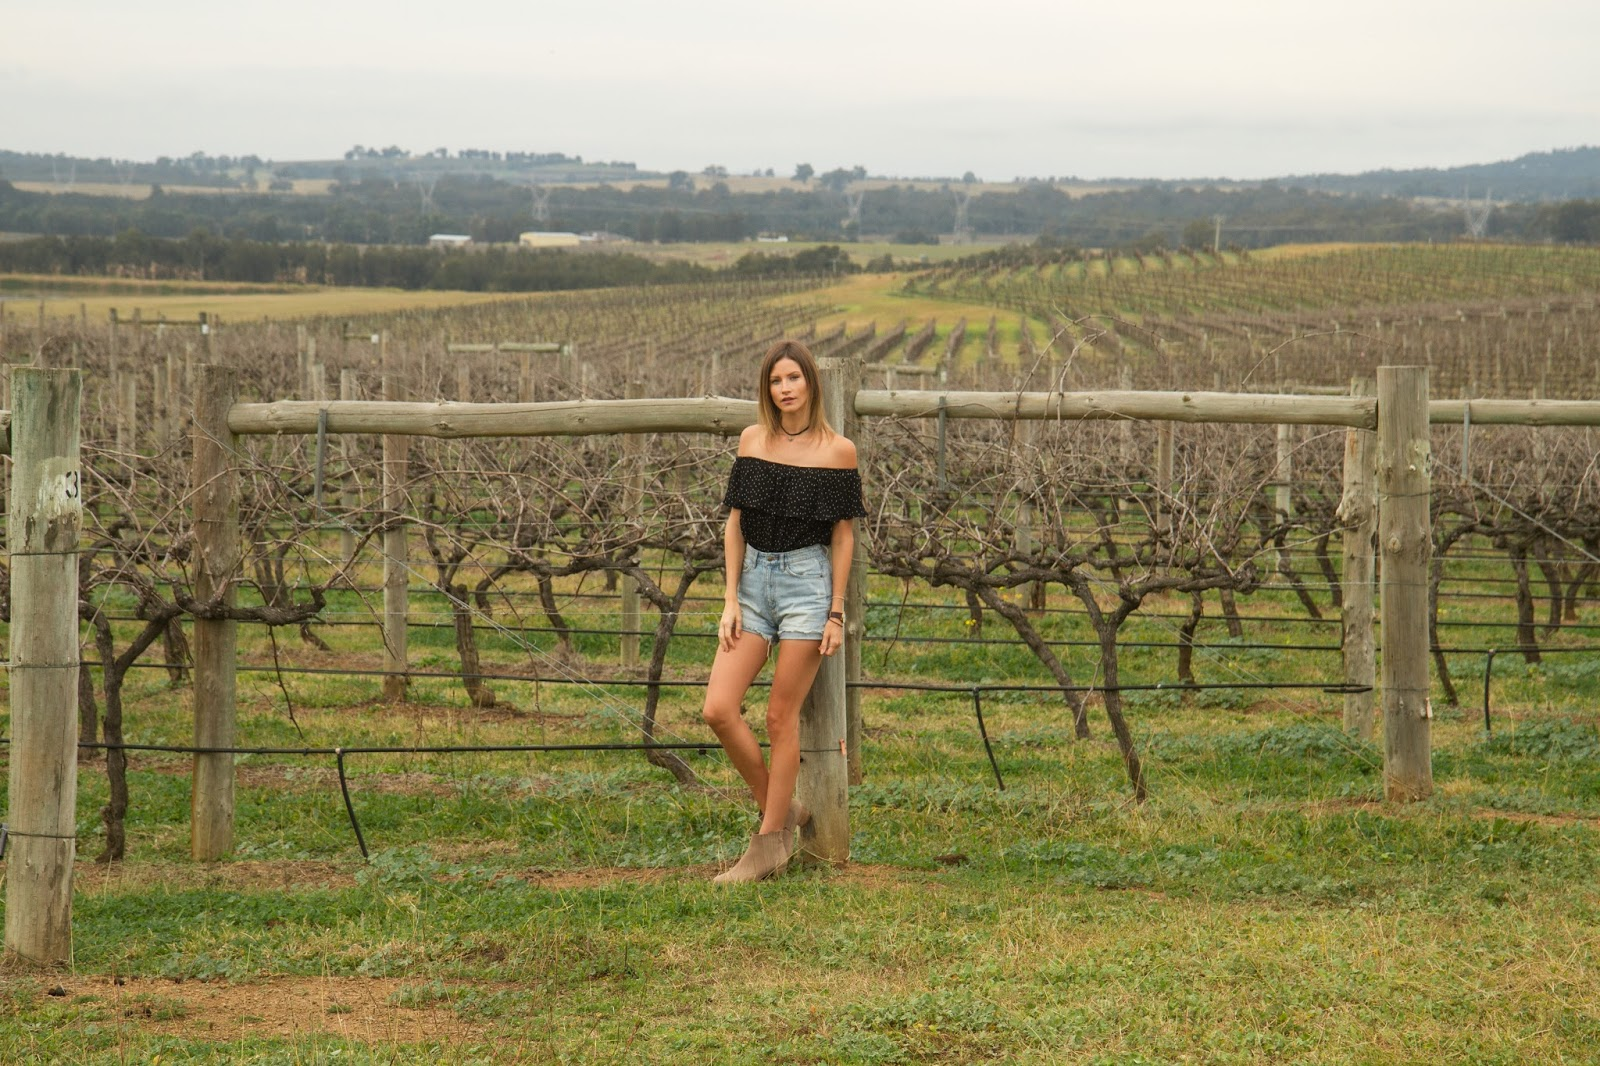 Fashion and travel blogger, Alison Hutchinson, is wearing a Topshop Bardot top, Ksubi denim shorts and Witchery beige ankle boots in the Hunter Valley, Australia